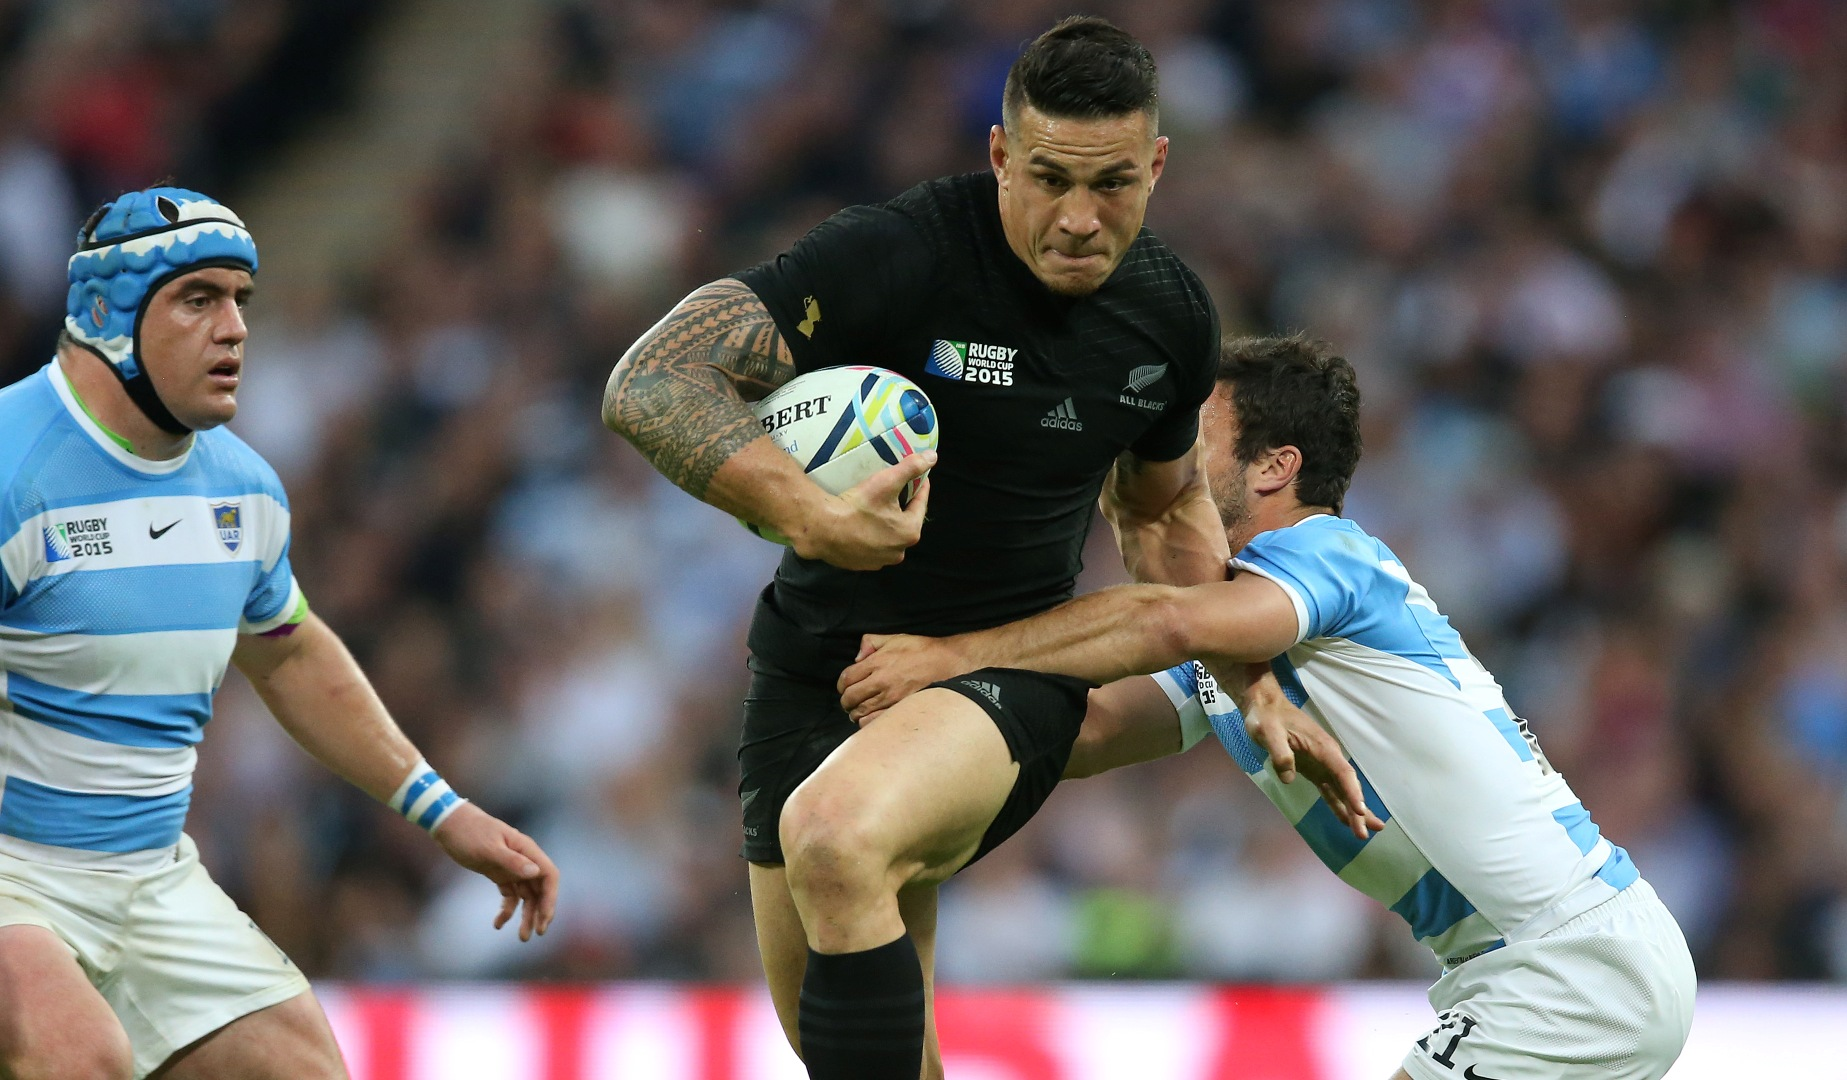 Sonny Bill tipped to stay in New Zealand